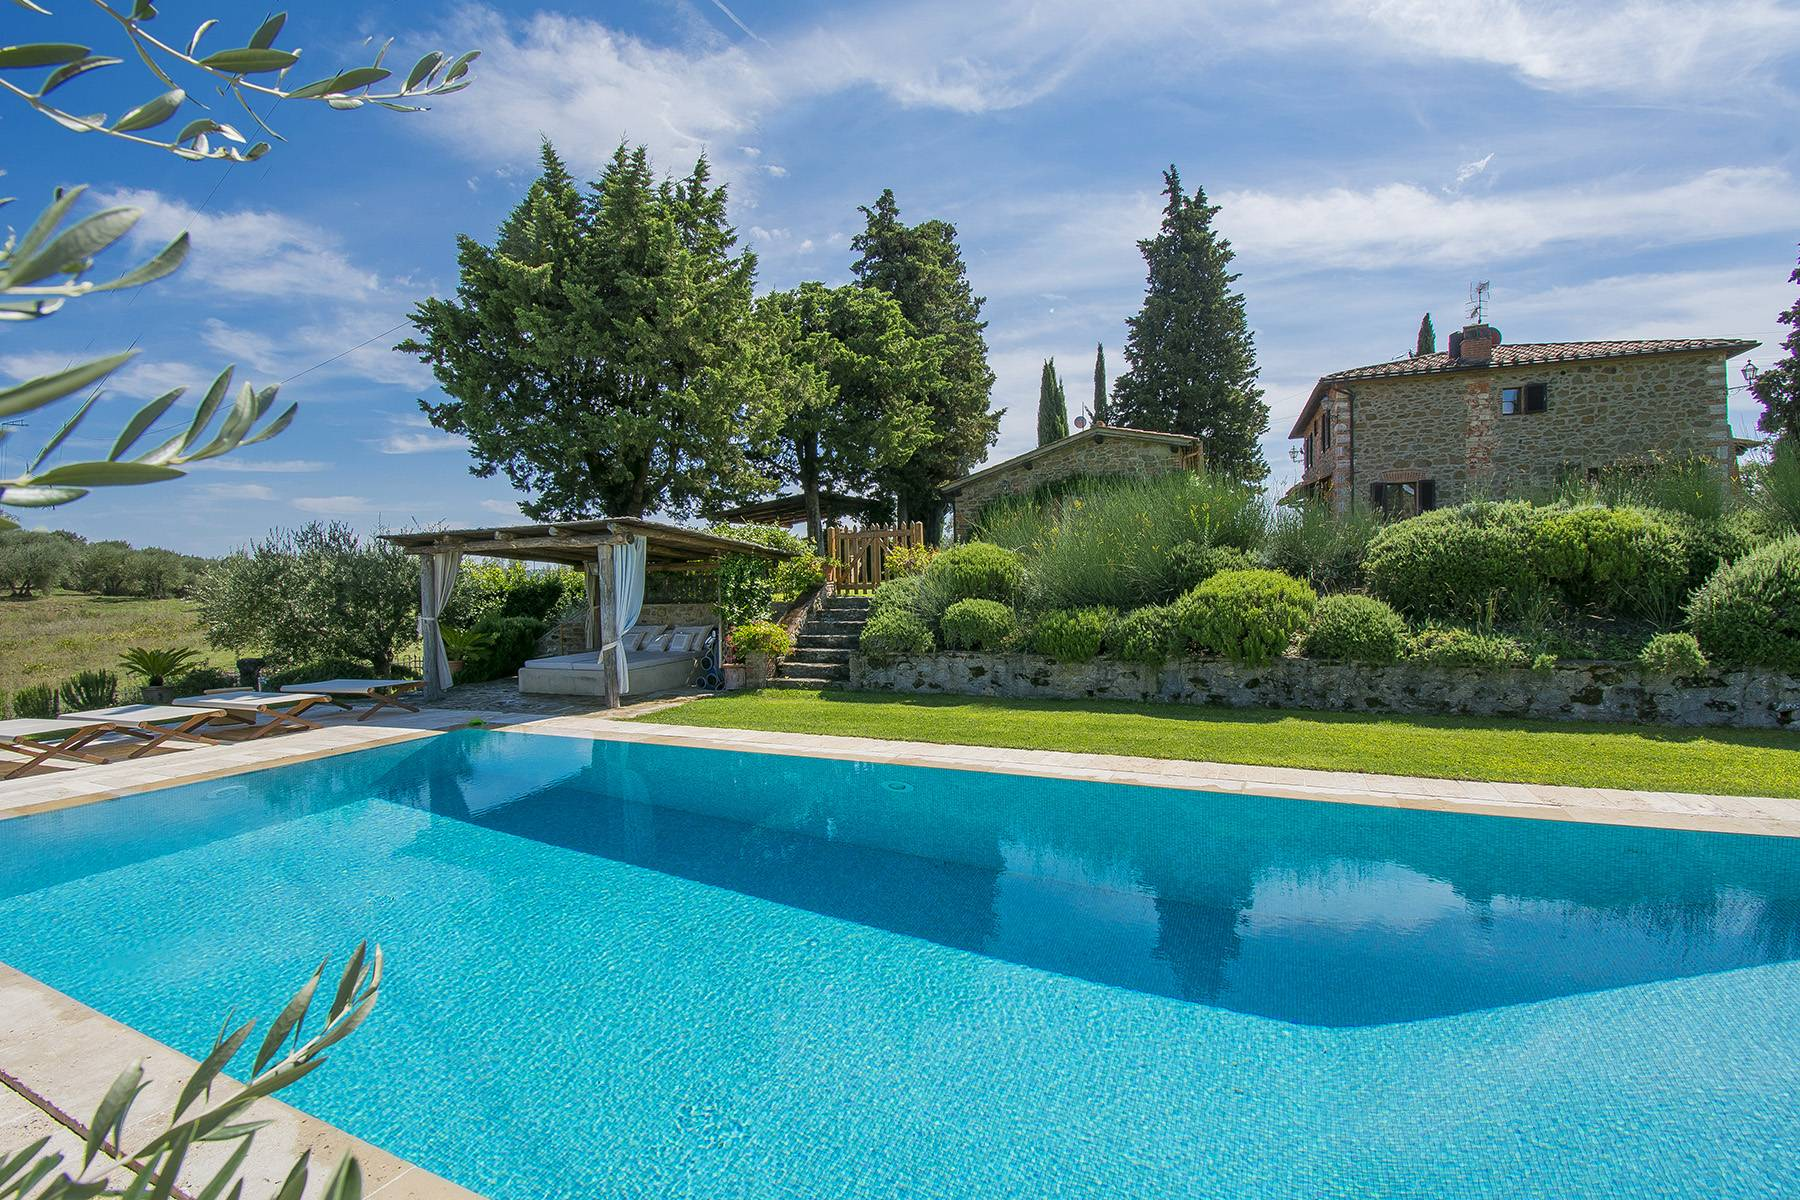 Rustic House in the Tuscan Hills for Sale - 3